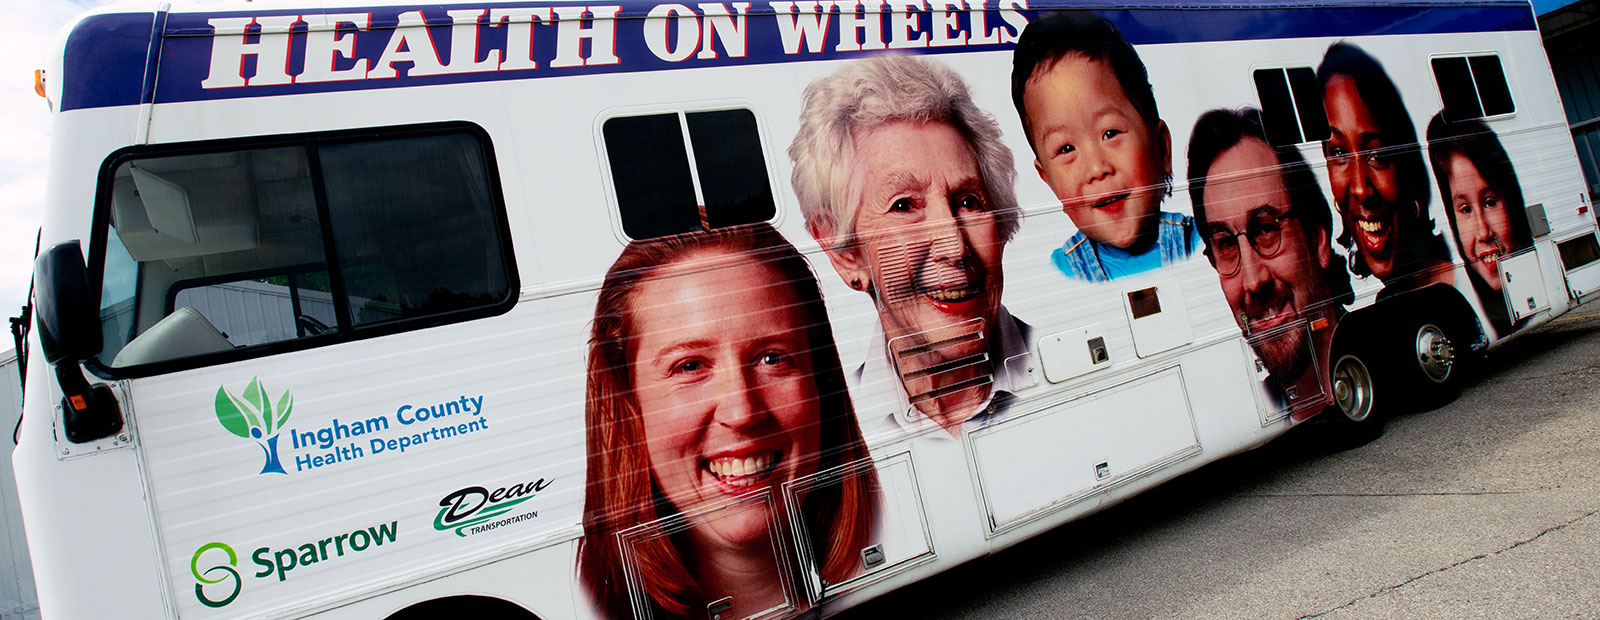 Lansing area's Mobile Health Clinic - Photo Dave Trumpie